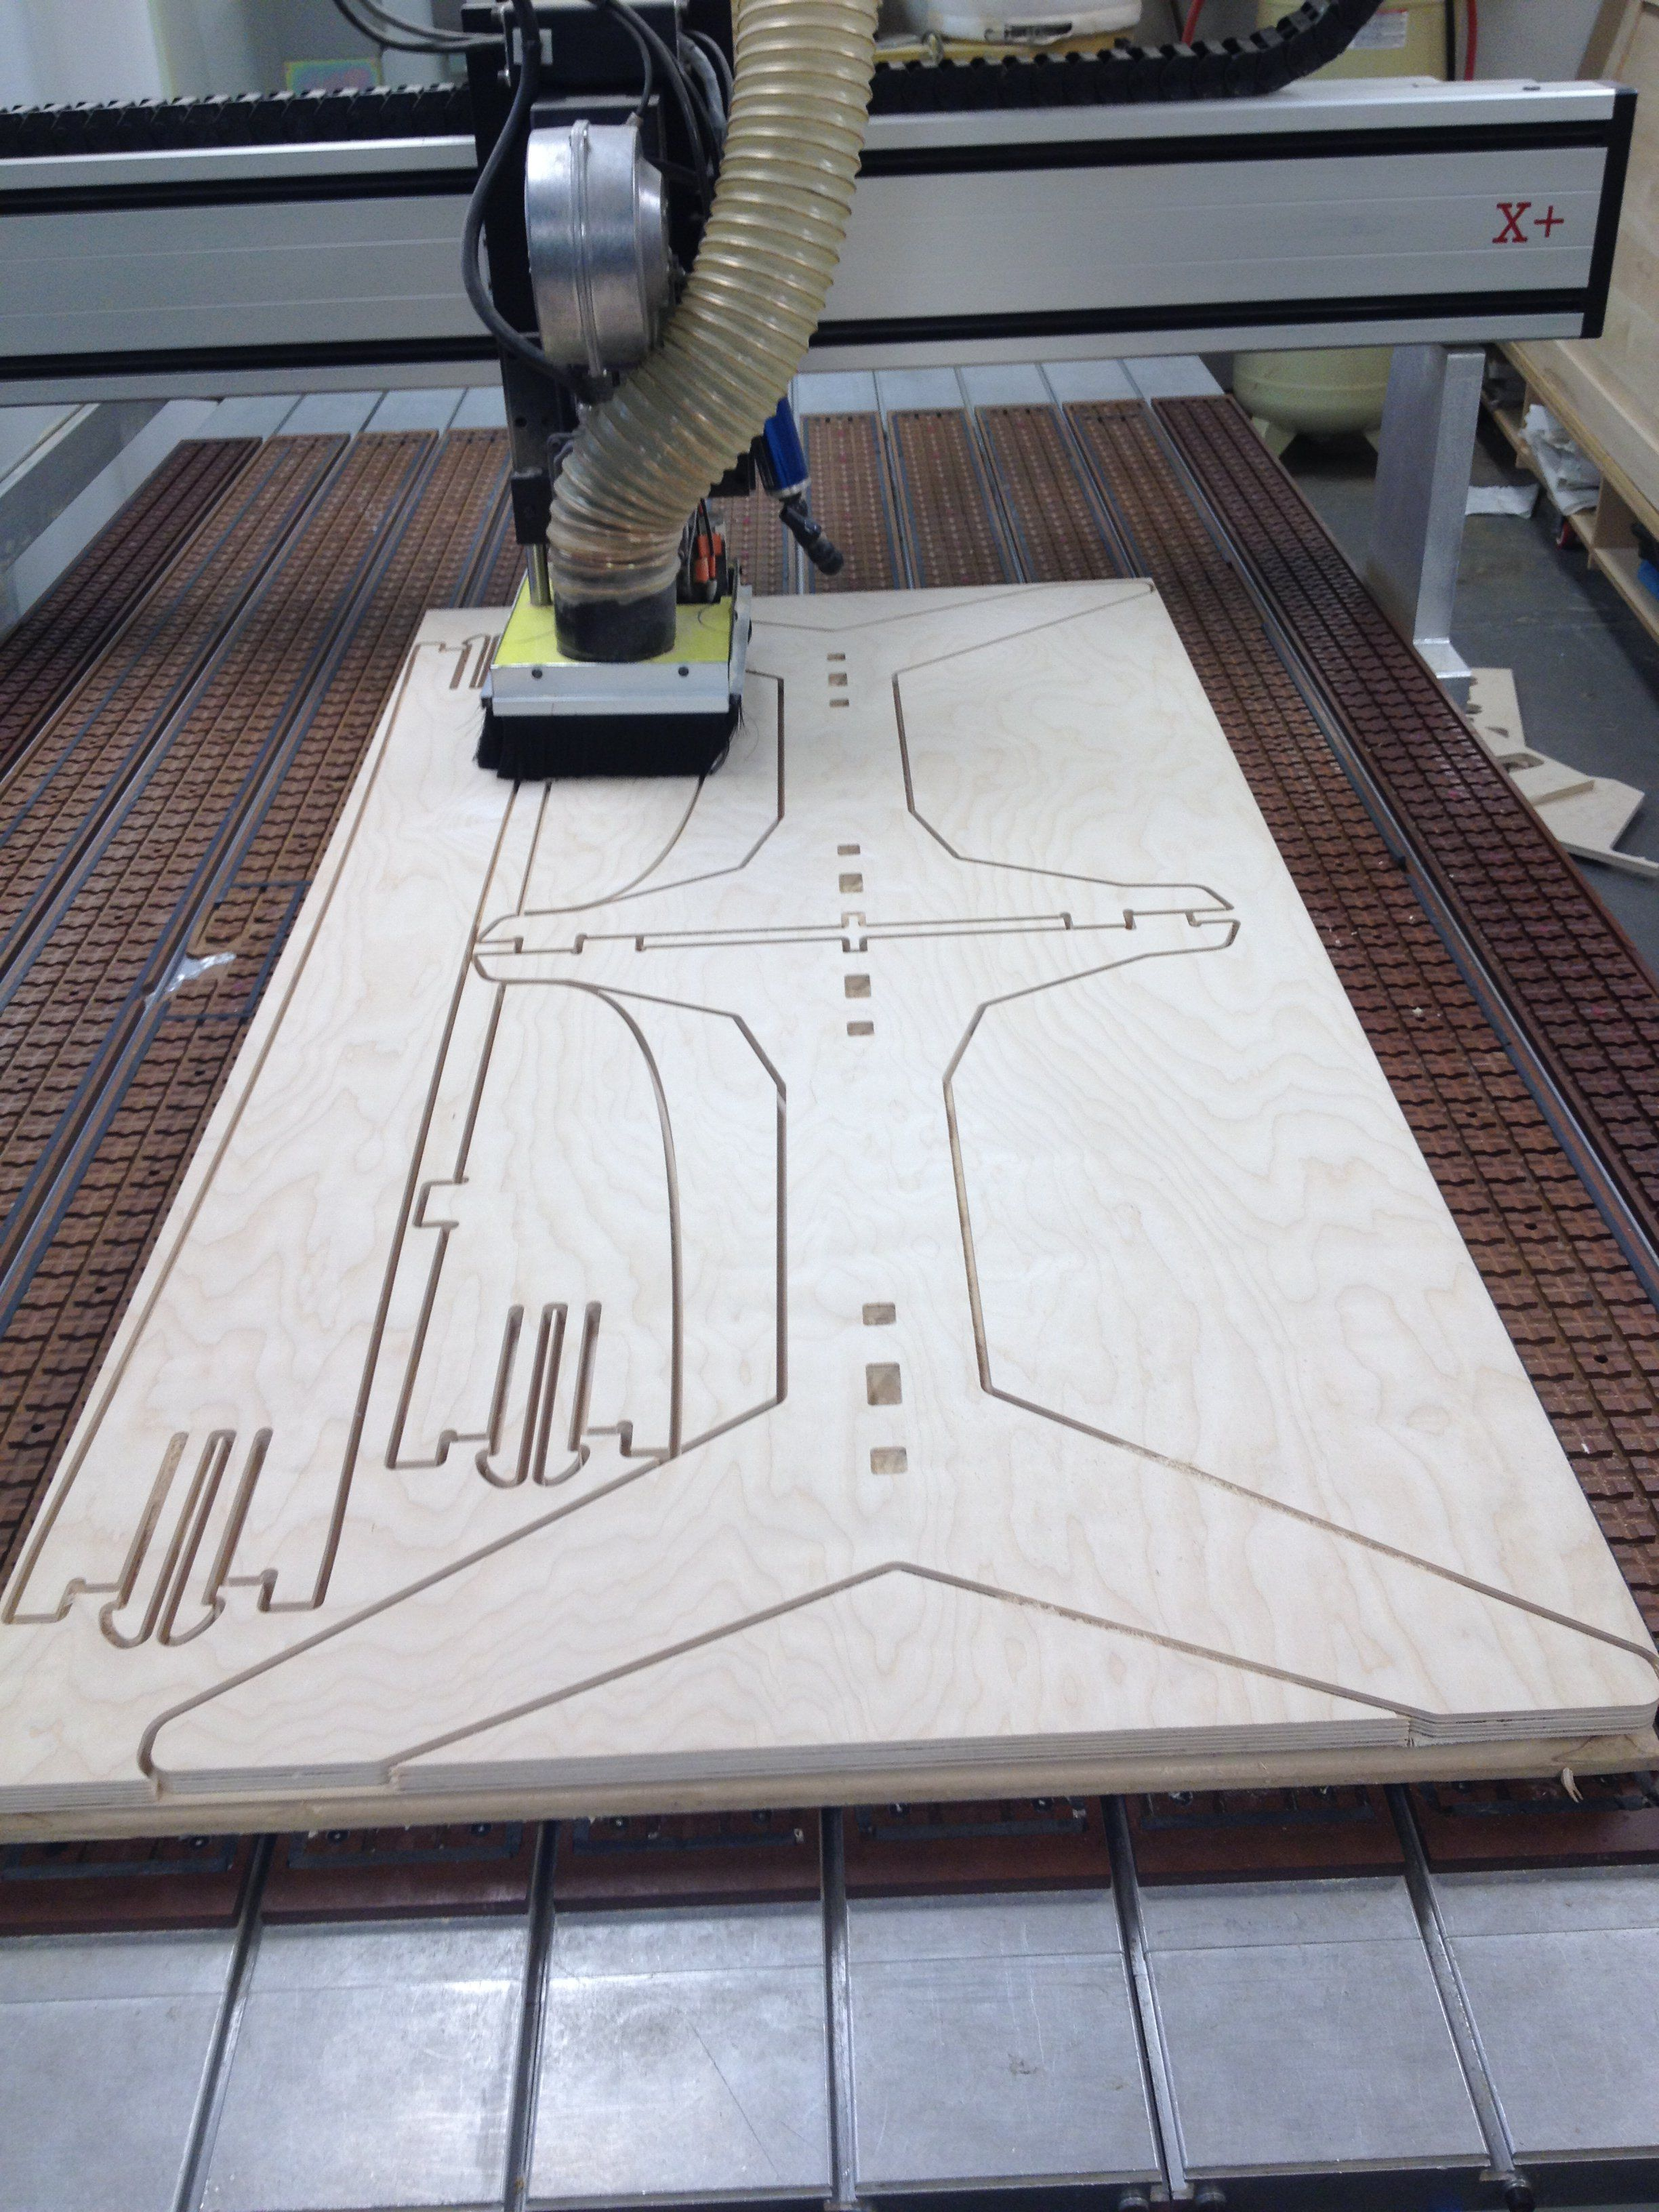 Cnc Routing Basics Toolpaths And Feeds N Speeds Make Diy Cnc Router Cnc Furniture Plans Cnc Router Projects